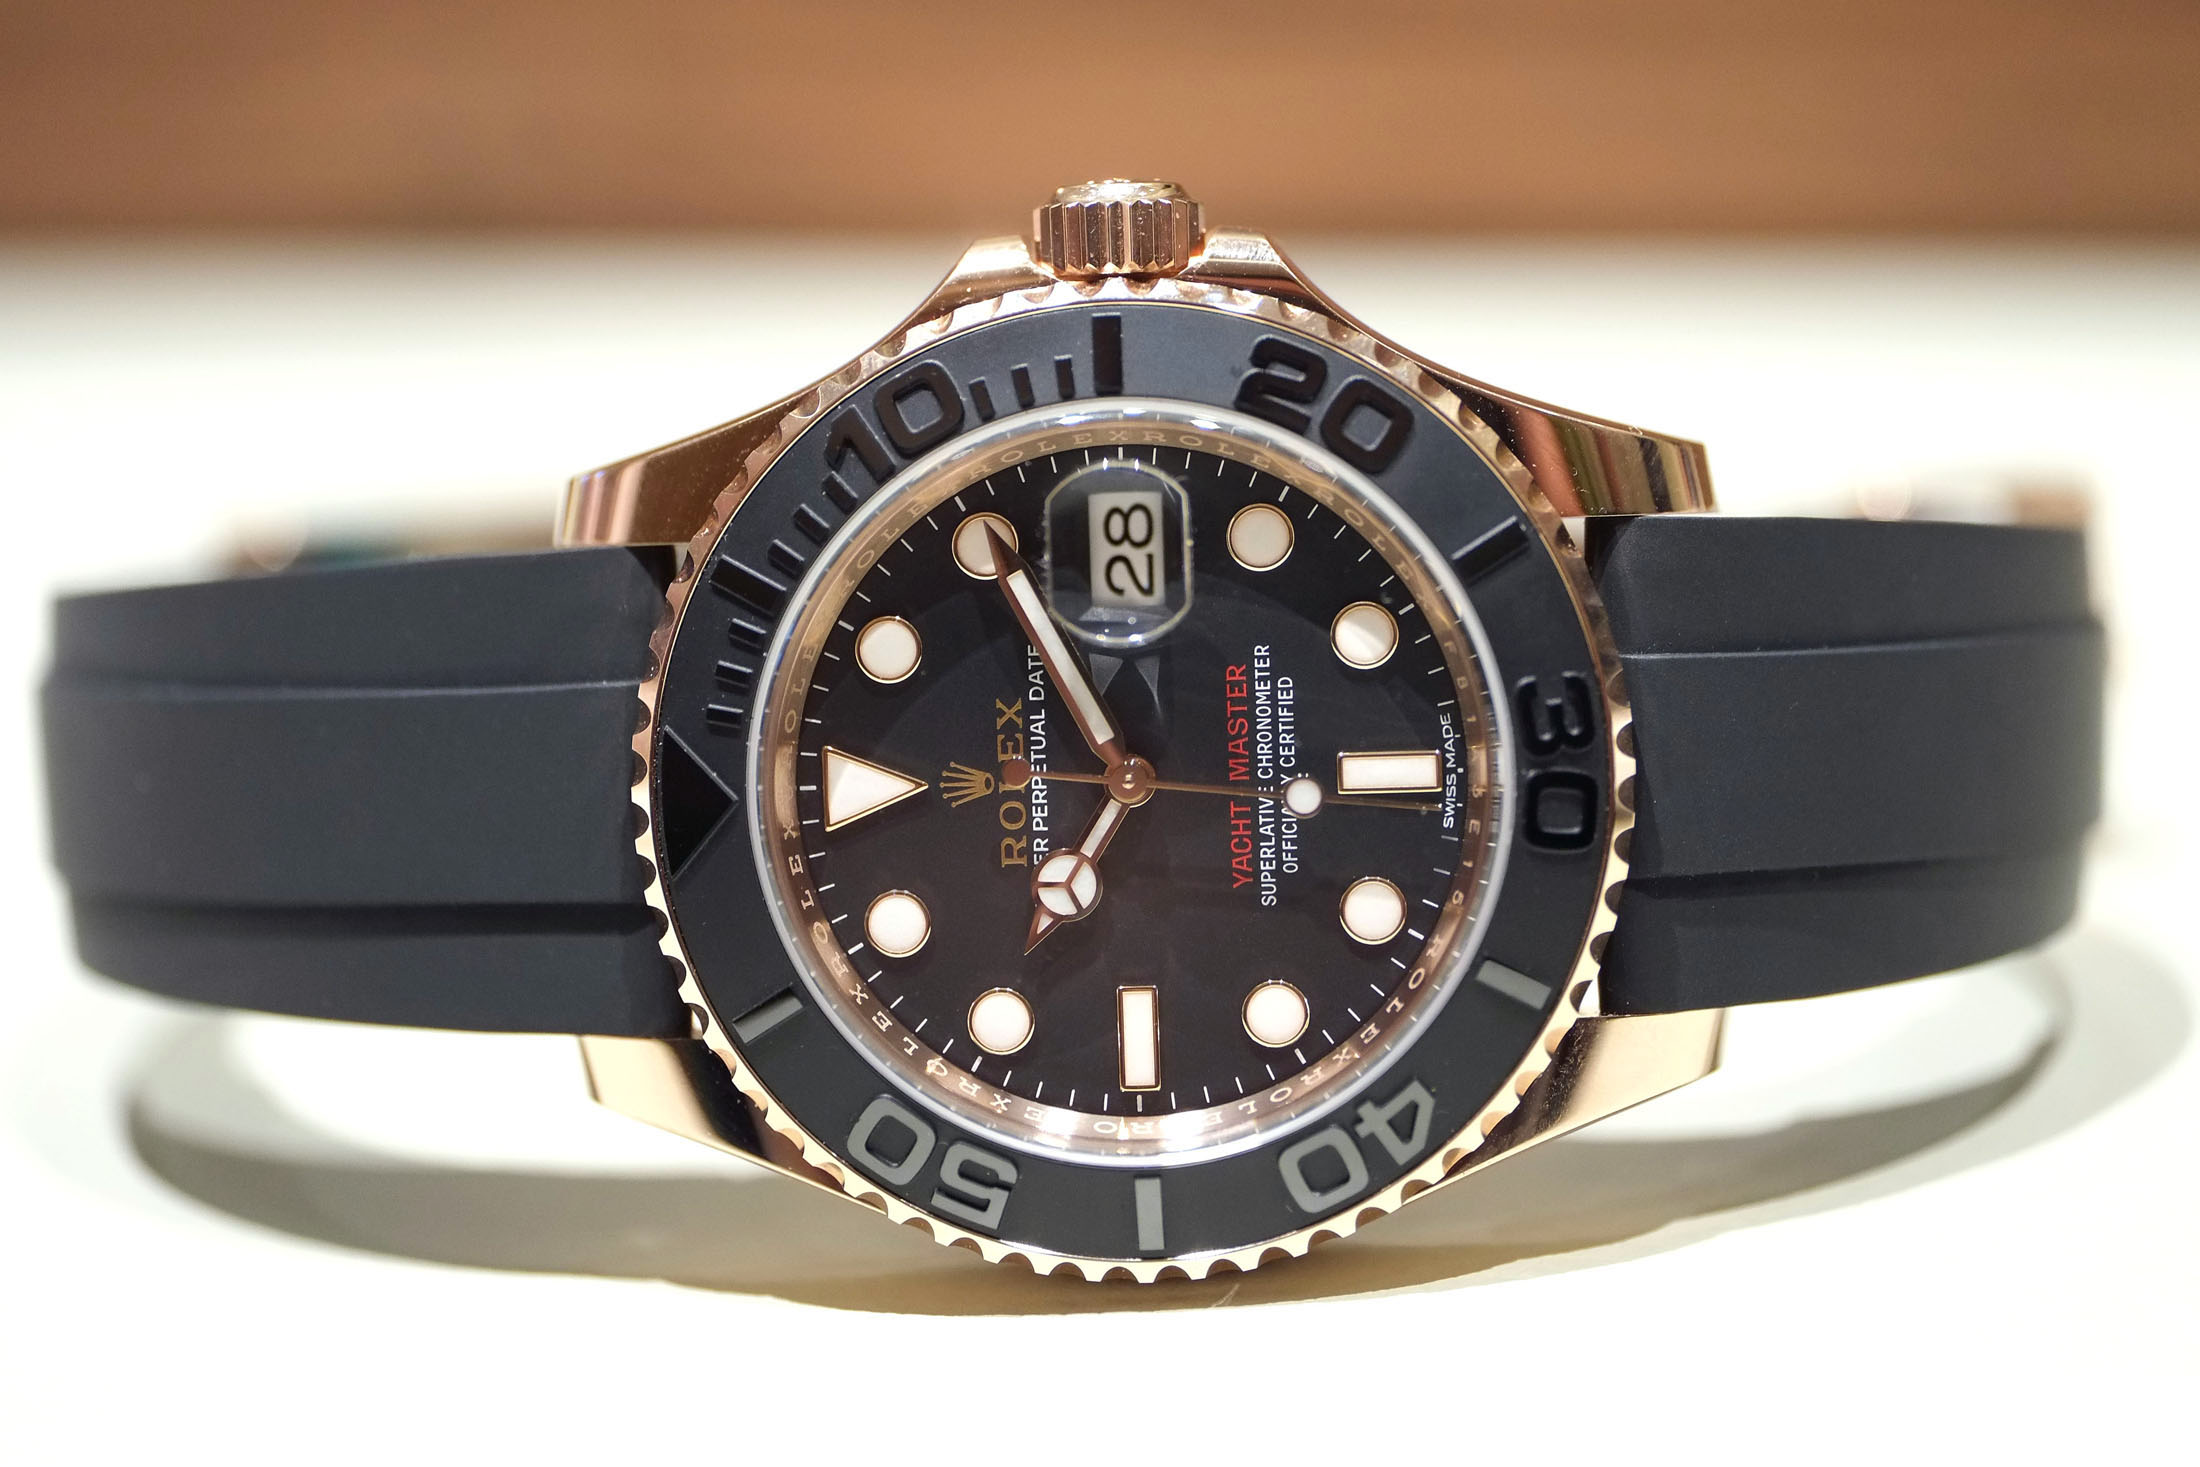 Rolex Rubber Rolex Oysterflex Bracelet Reimagines The Rubber Strap Bloomberg